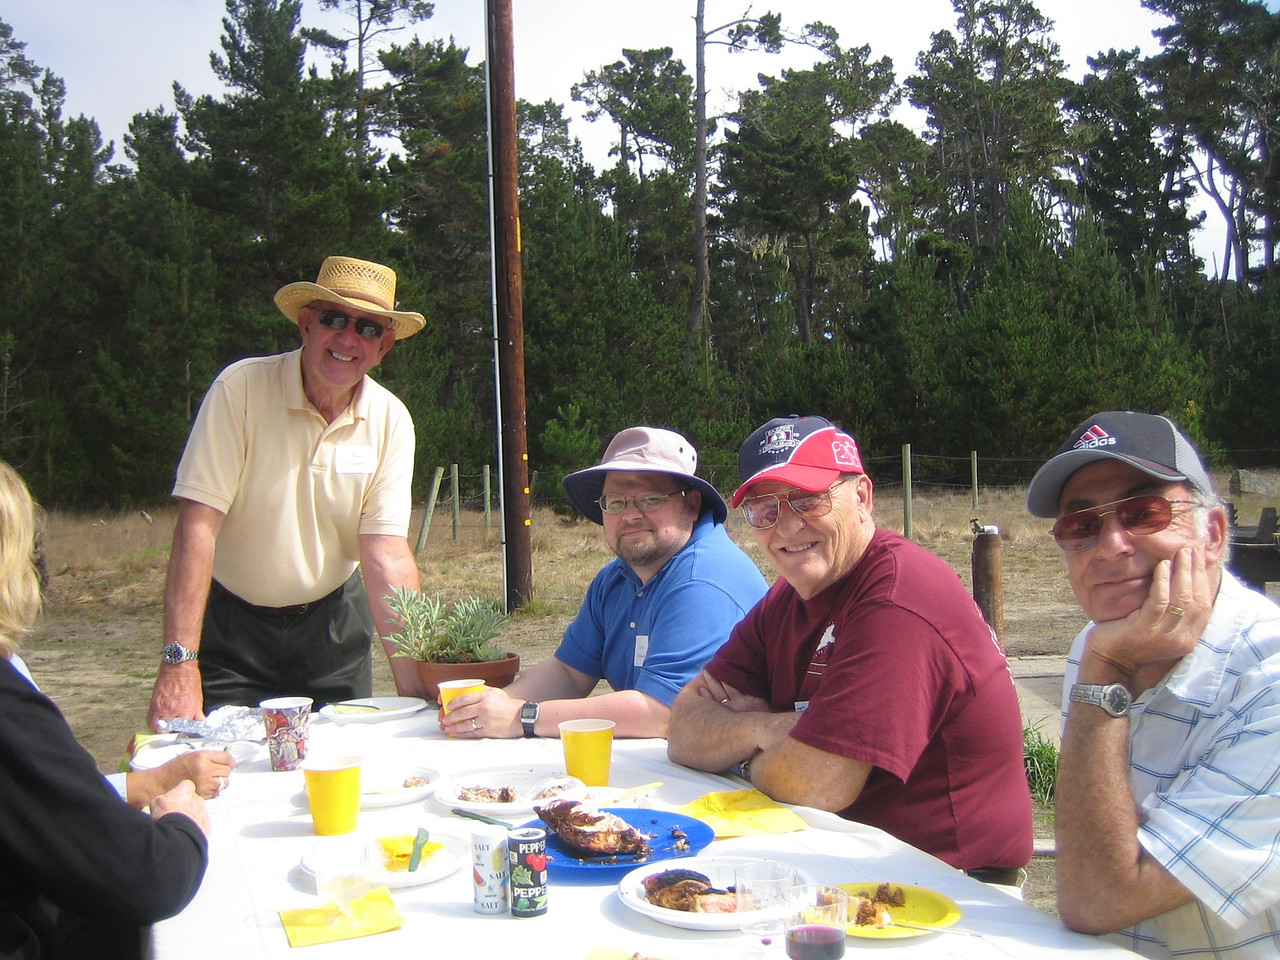 Sharing a meal are Don Eastman, Dirk Barthelow, Terry Alfriend, and Michael Young.